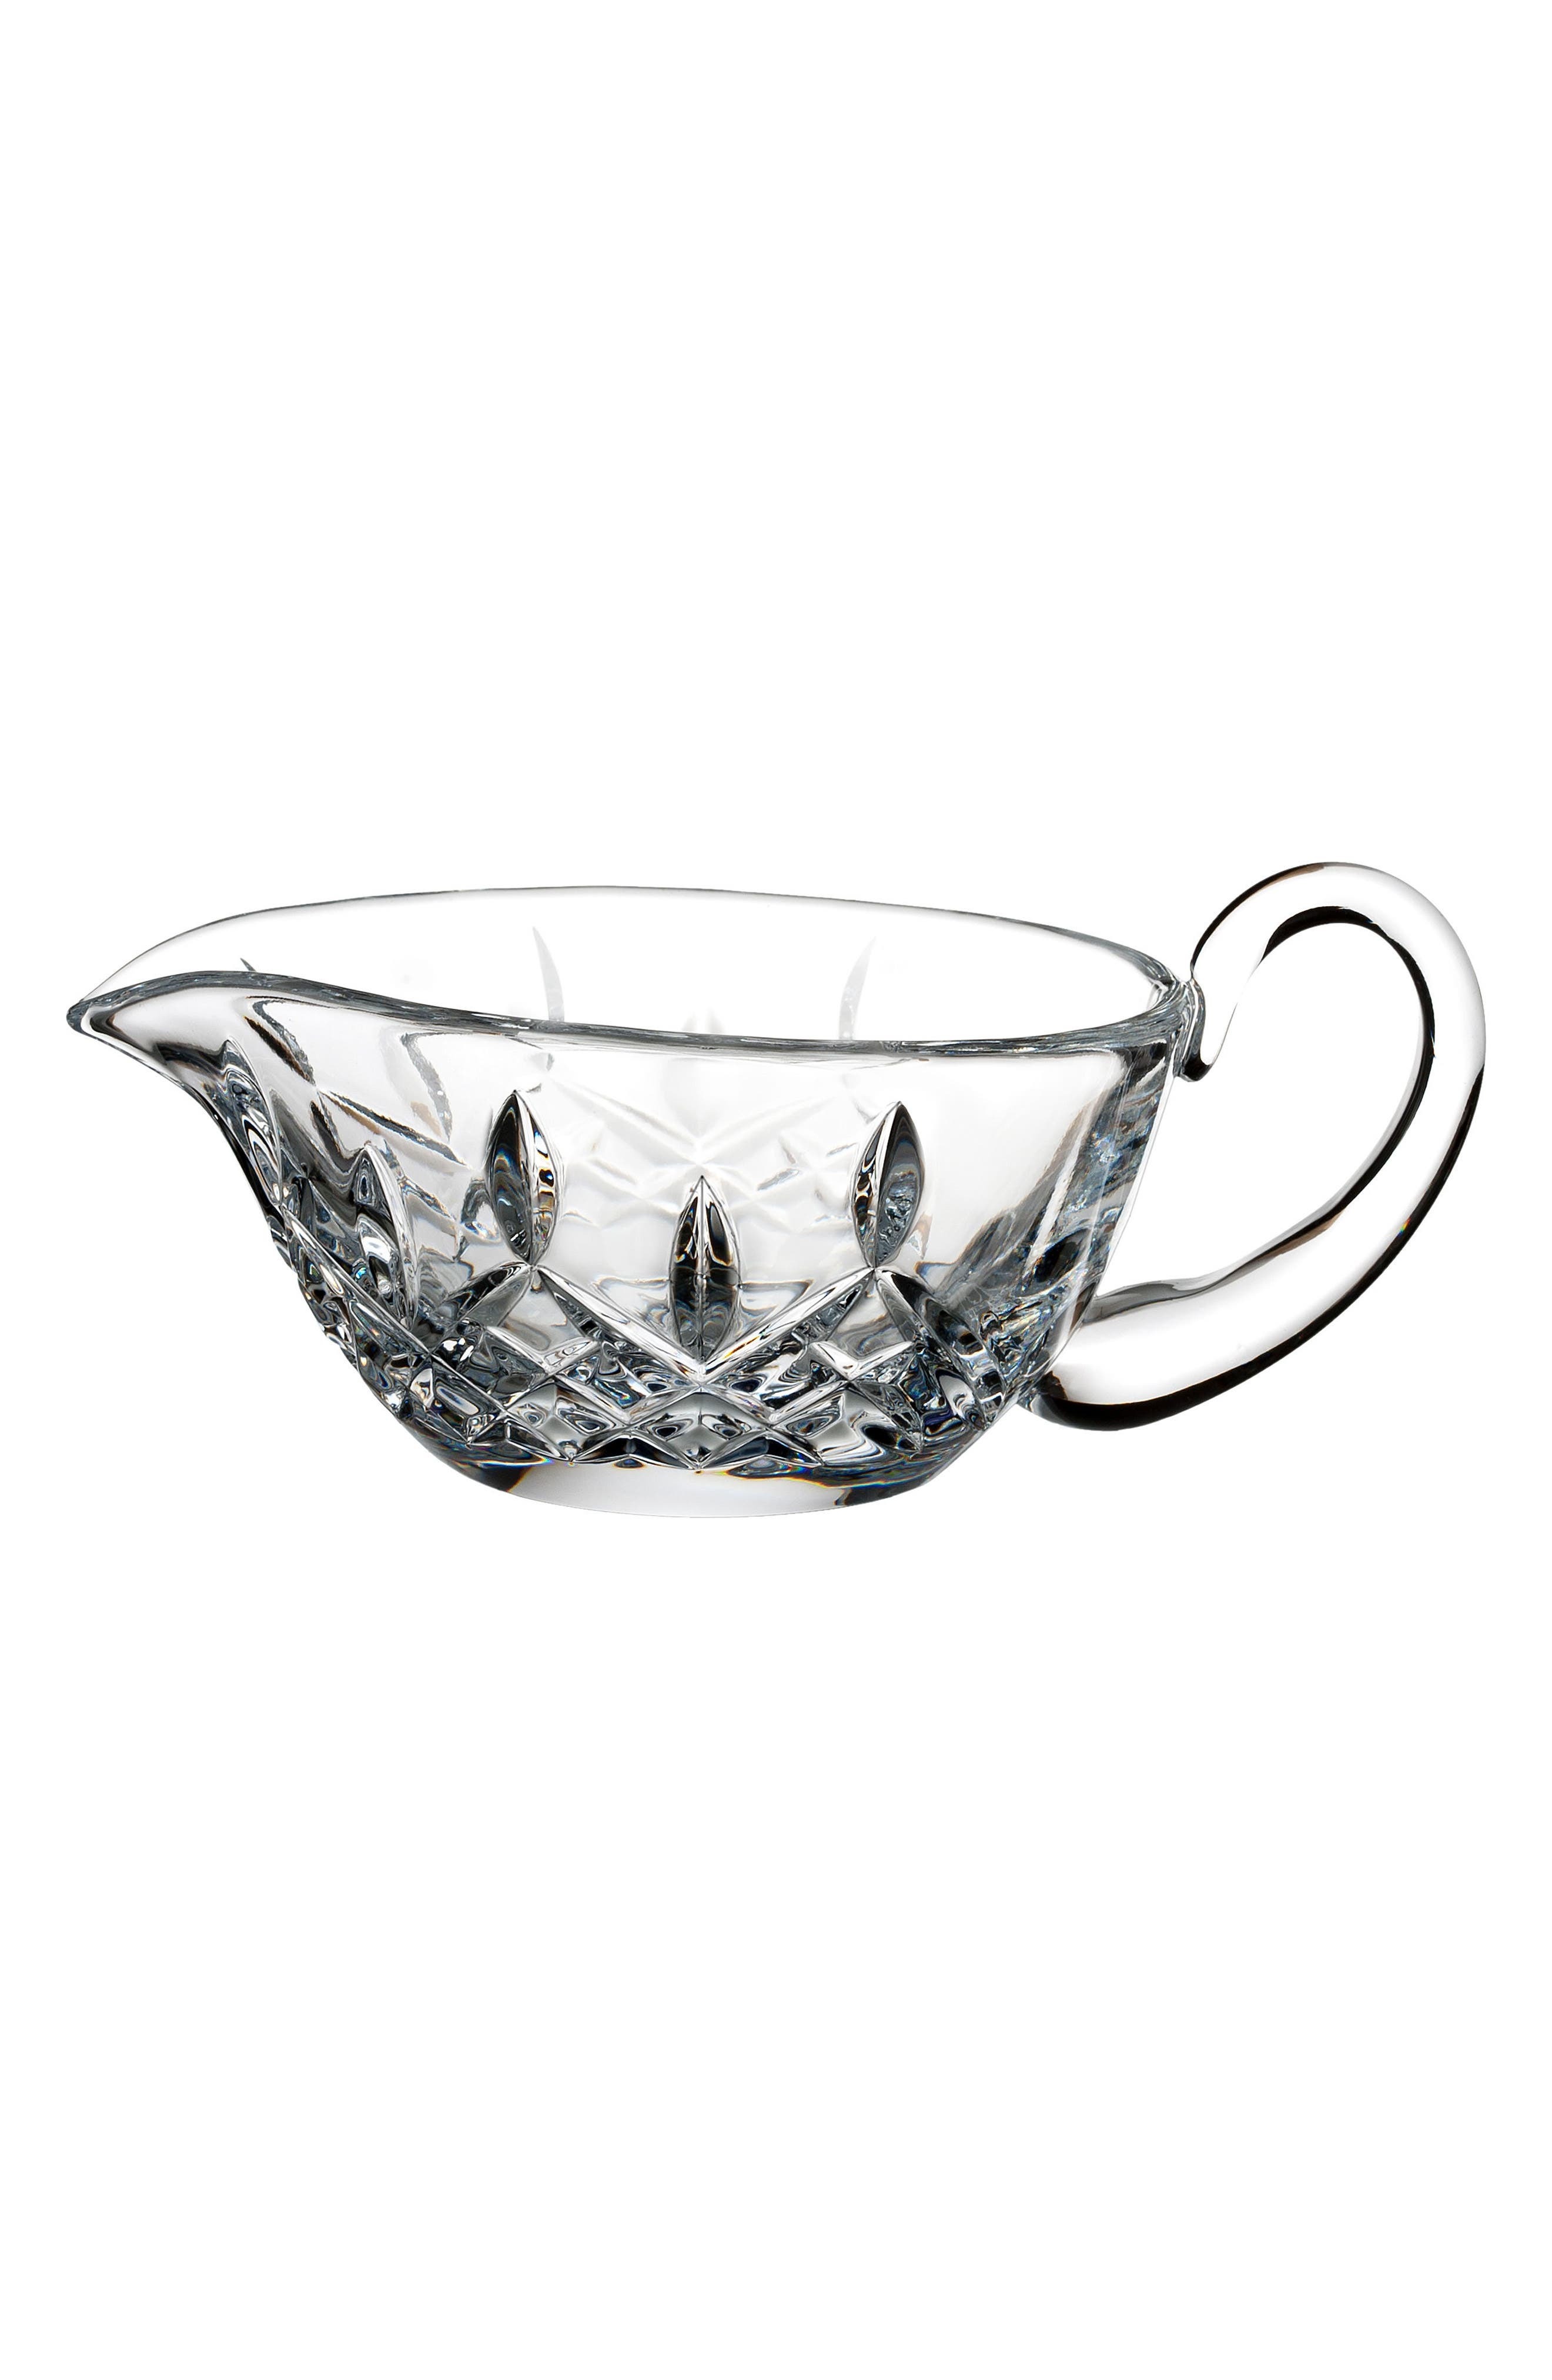 Lismore Lead Crystal Gravy Server,                         Main,                         color, Crystal